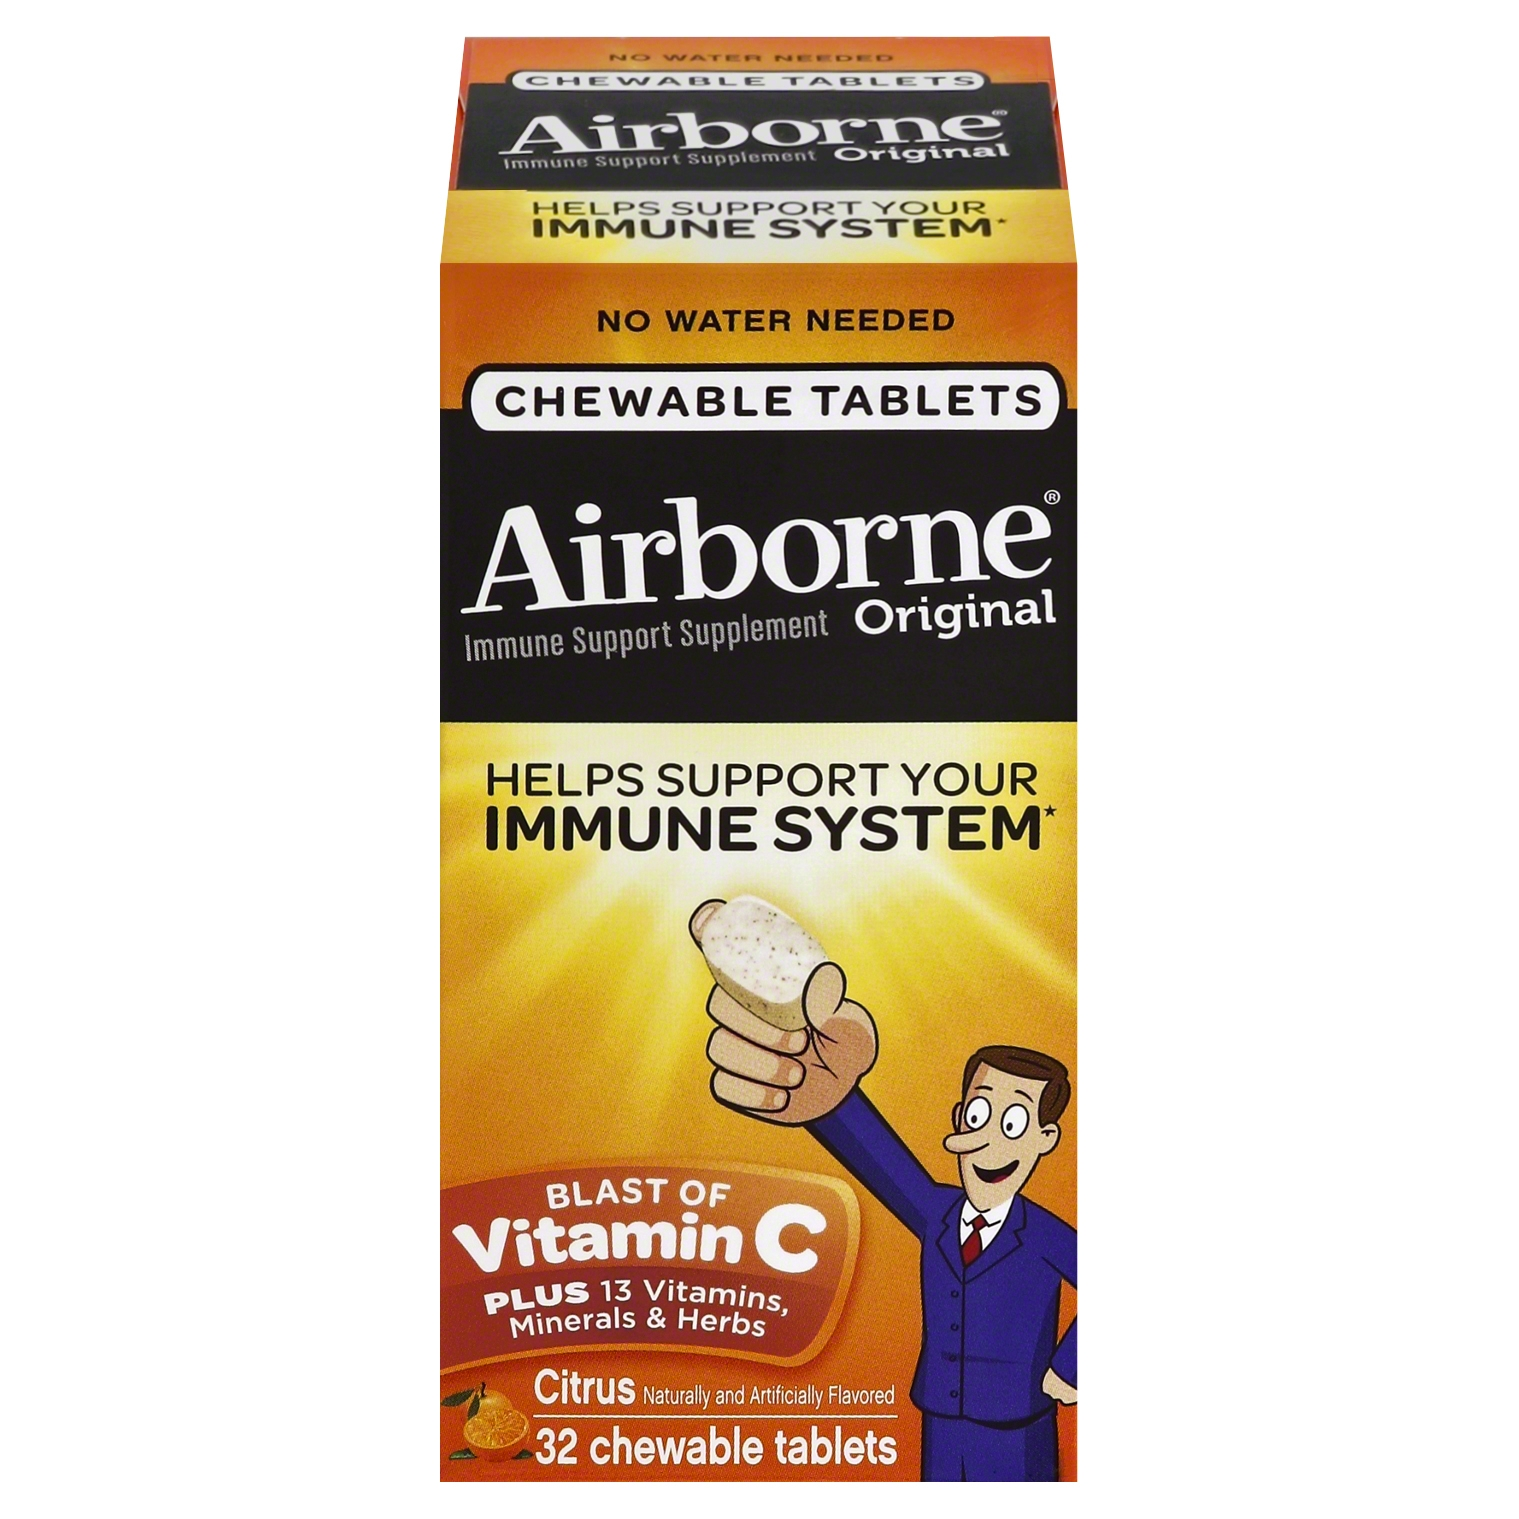 Airborne Chewable Vitamin C 1000mg Immune Support Supplement Tablets, Citrus, 32 Count